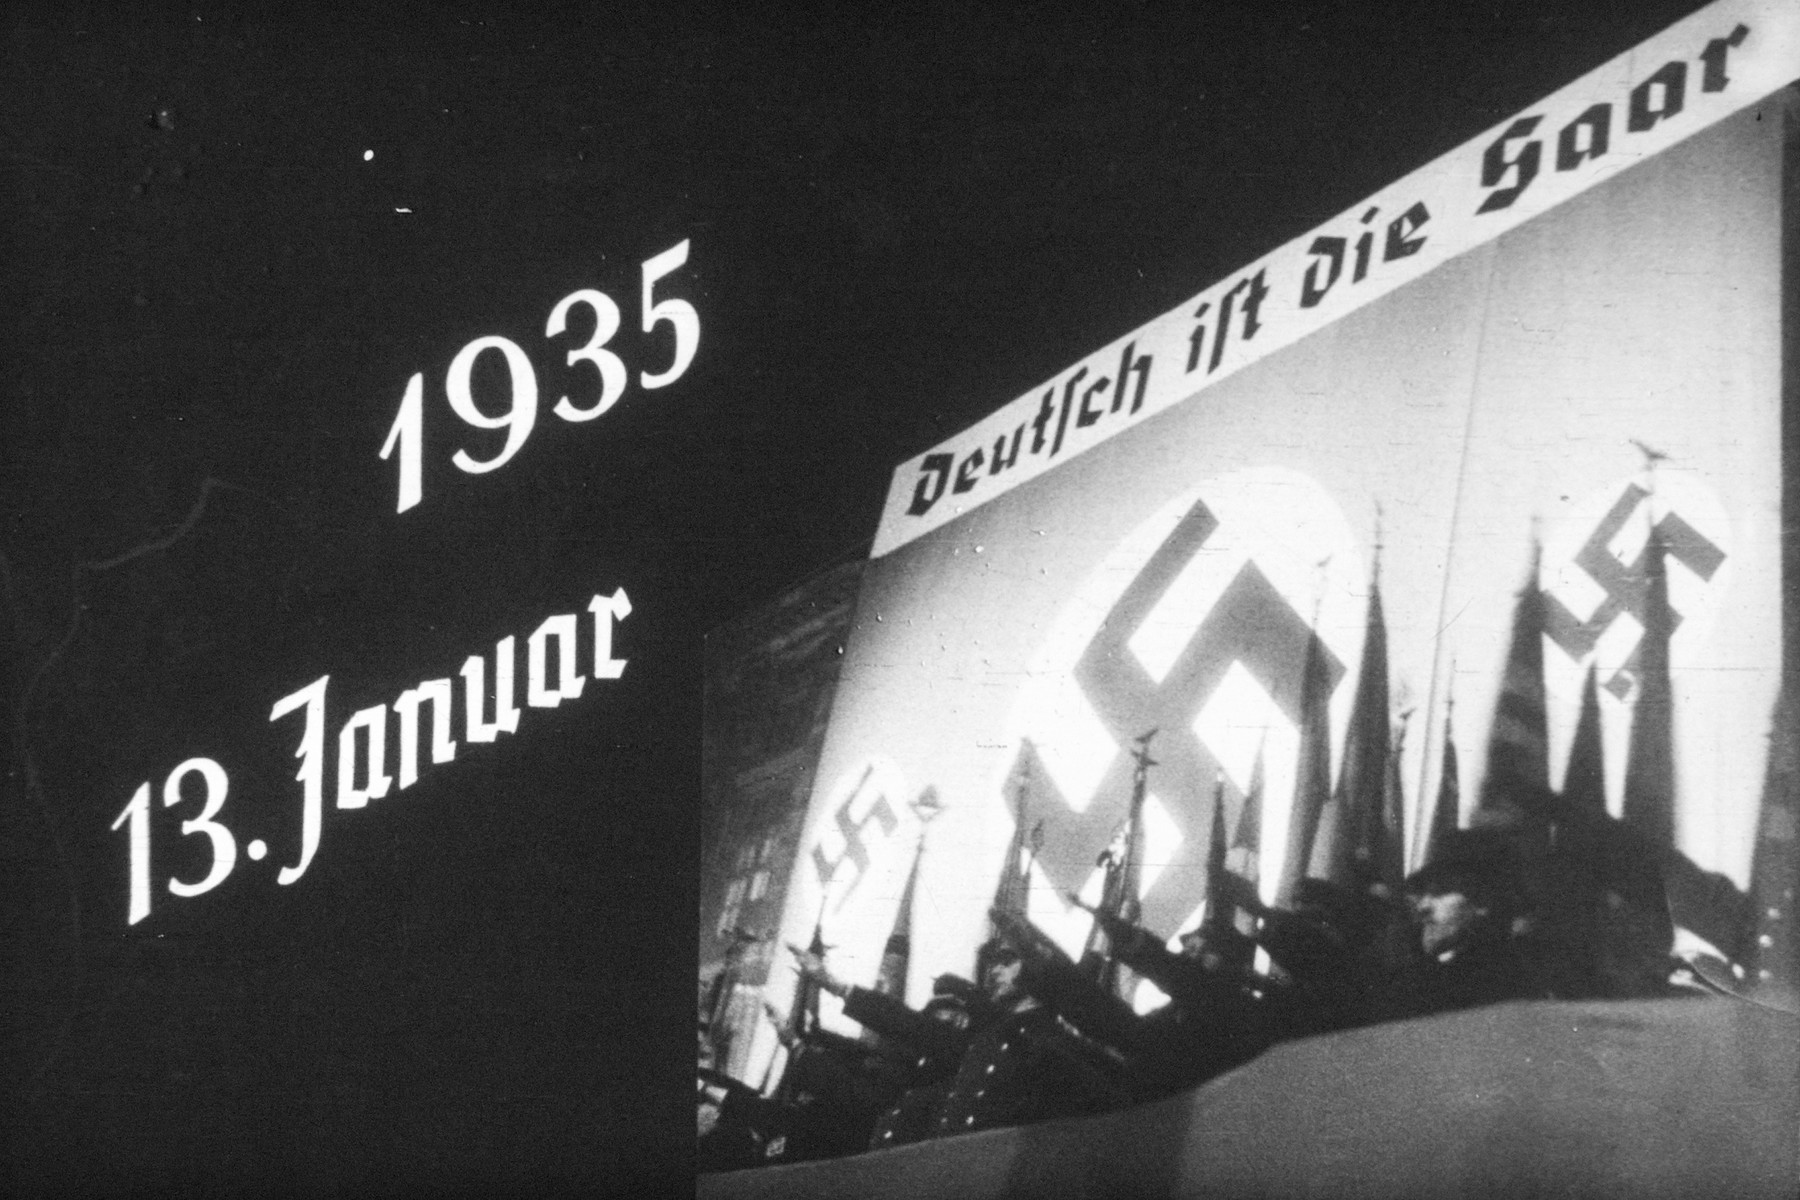 7th slide from a Hitler Youth slideshow about the aftermath of WWI, Versailles, how it was overcome and the rise of Nazism.  1935 13 Januar Deutsch ist die Saar // 1935 January 13, Saar is German